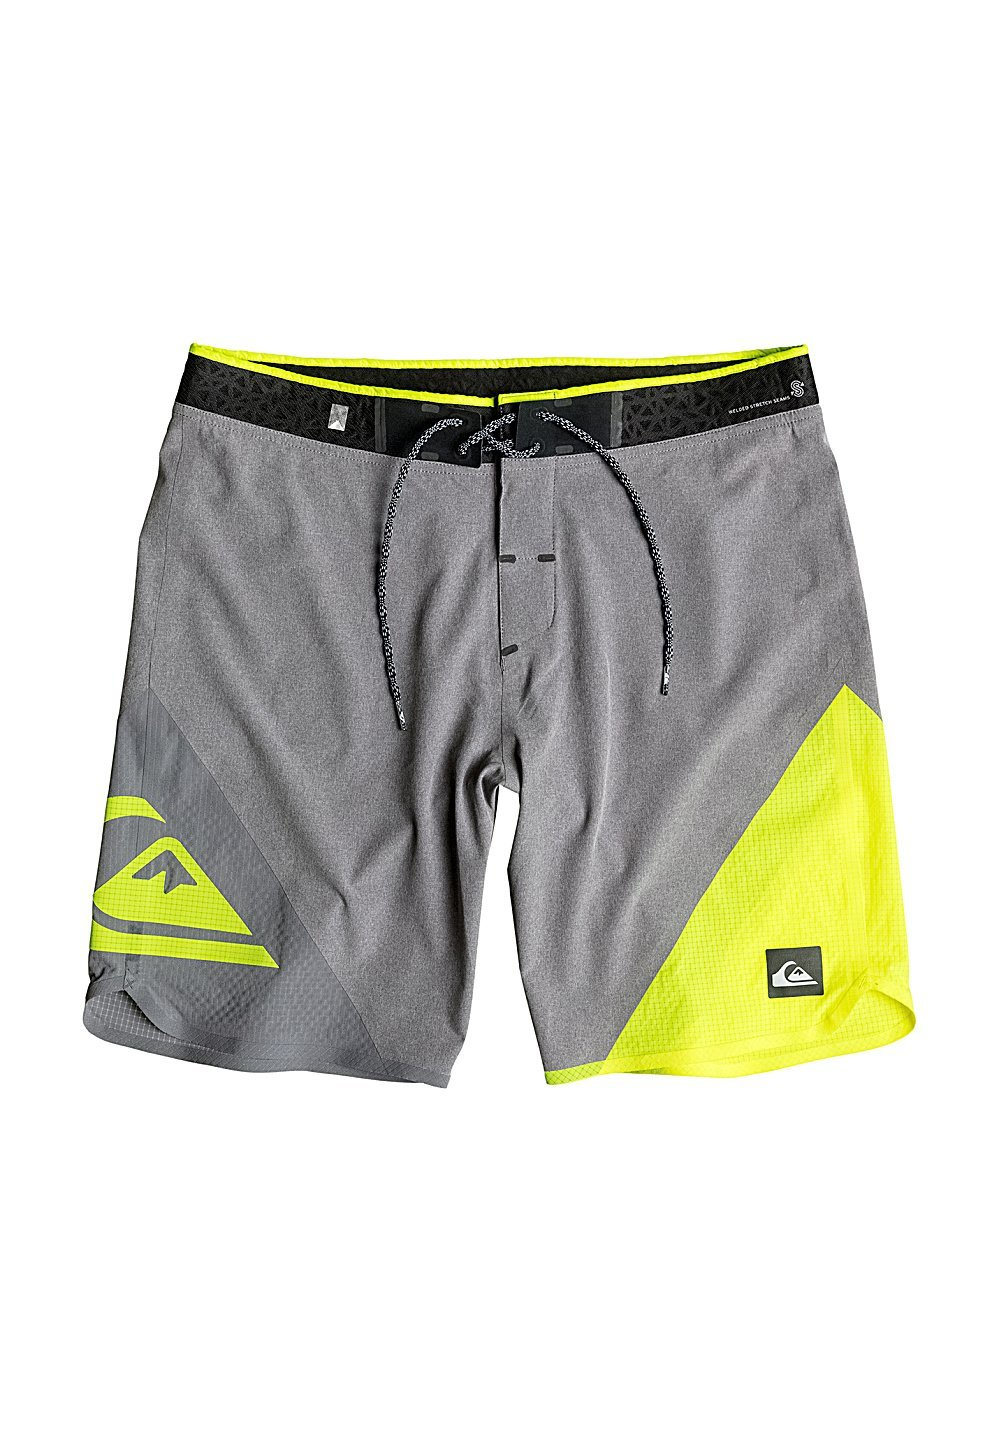 Herren Boardshorts Quiksilver New Wave High 19 Boardshorts